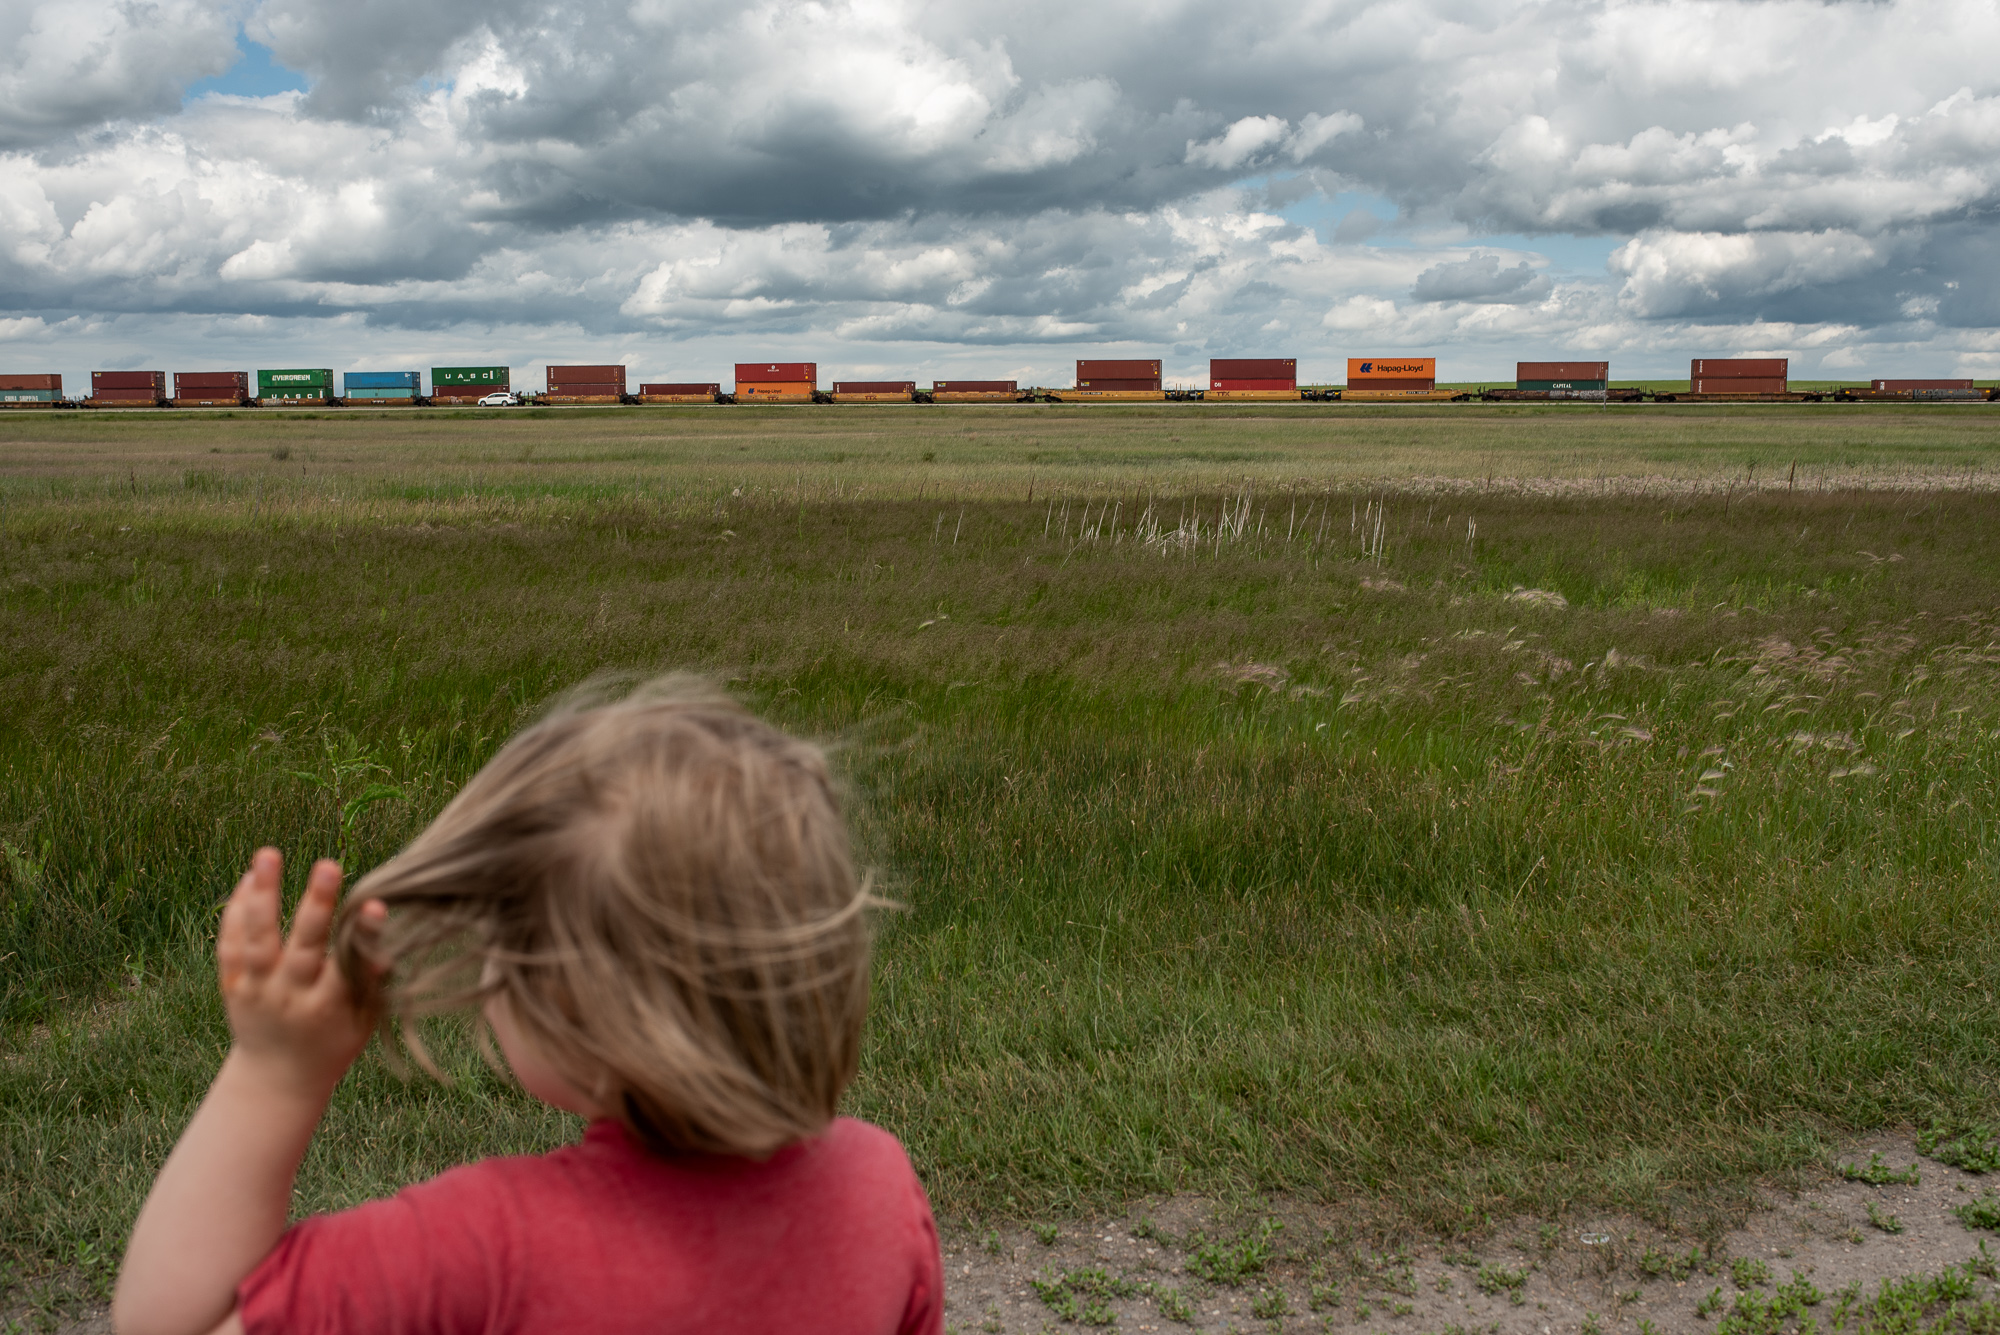 My daughter and I admire the trains on the Prairies. We drove from Vancouver to Ottawa with our three small children this summer to relocate to Canada's capital.